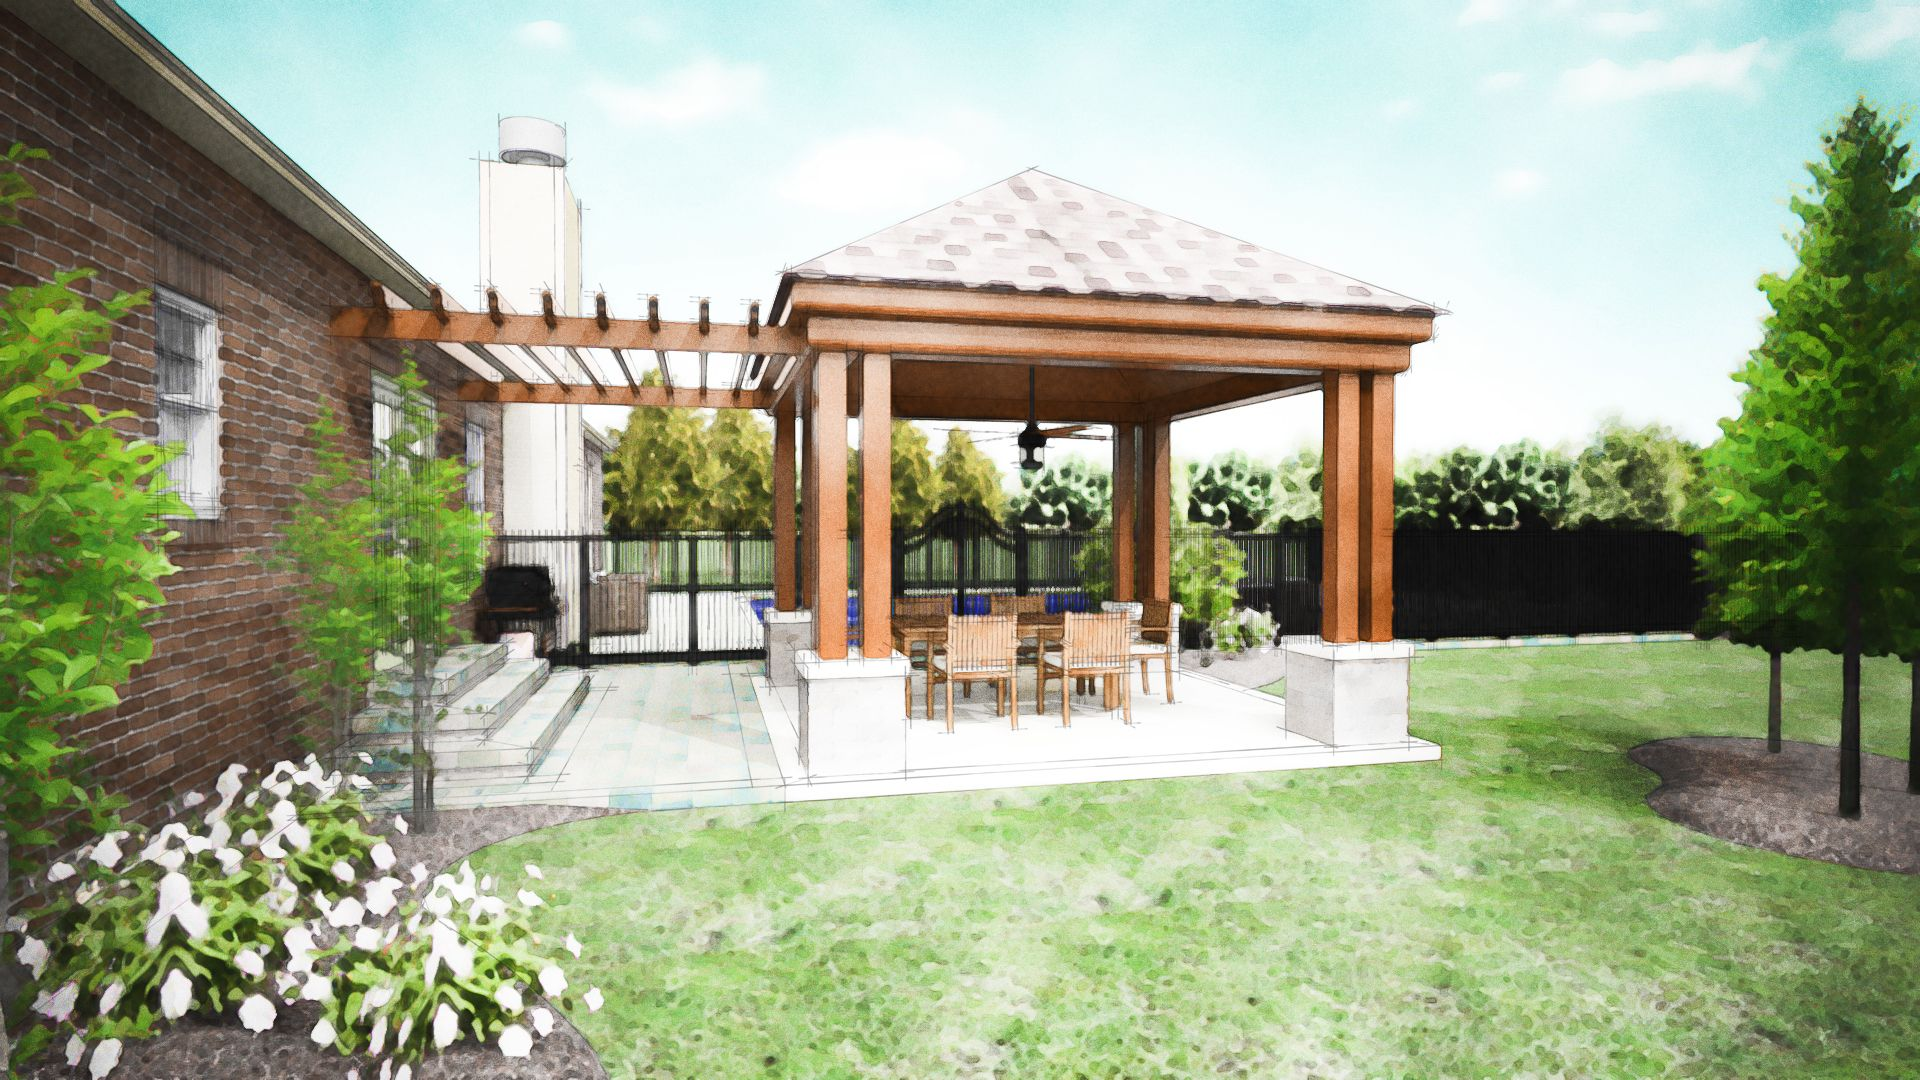 Covered Patio Design Pictures | Covered Patio Company Dayton   Patio Cover  Designs Columbus, OH | Two ... | Need It Now | Pinterest | Covered Patio  Design, ...